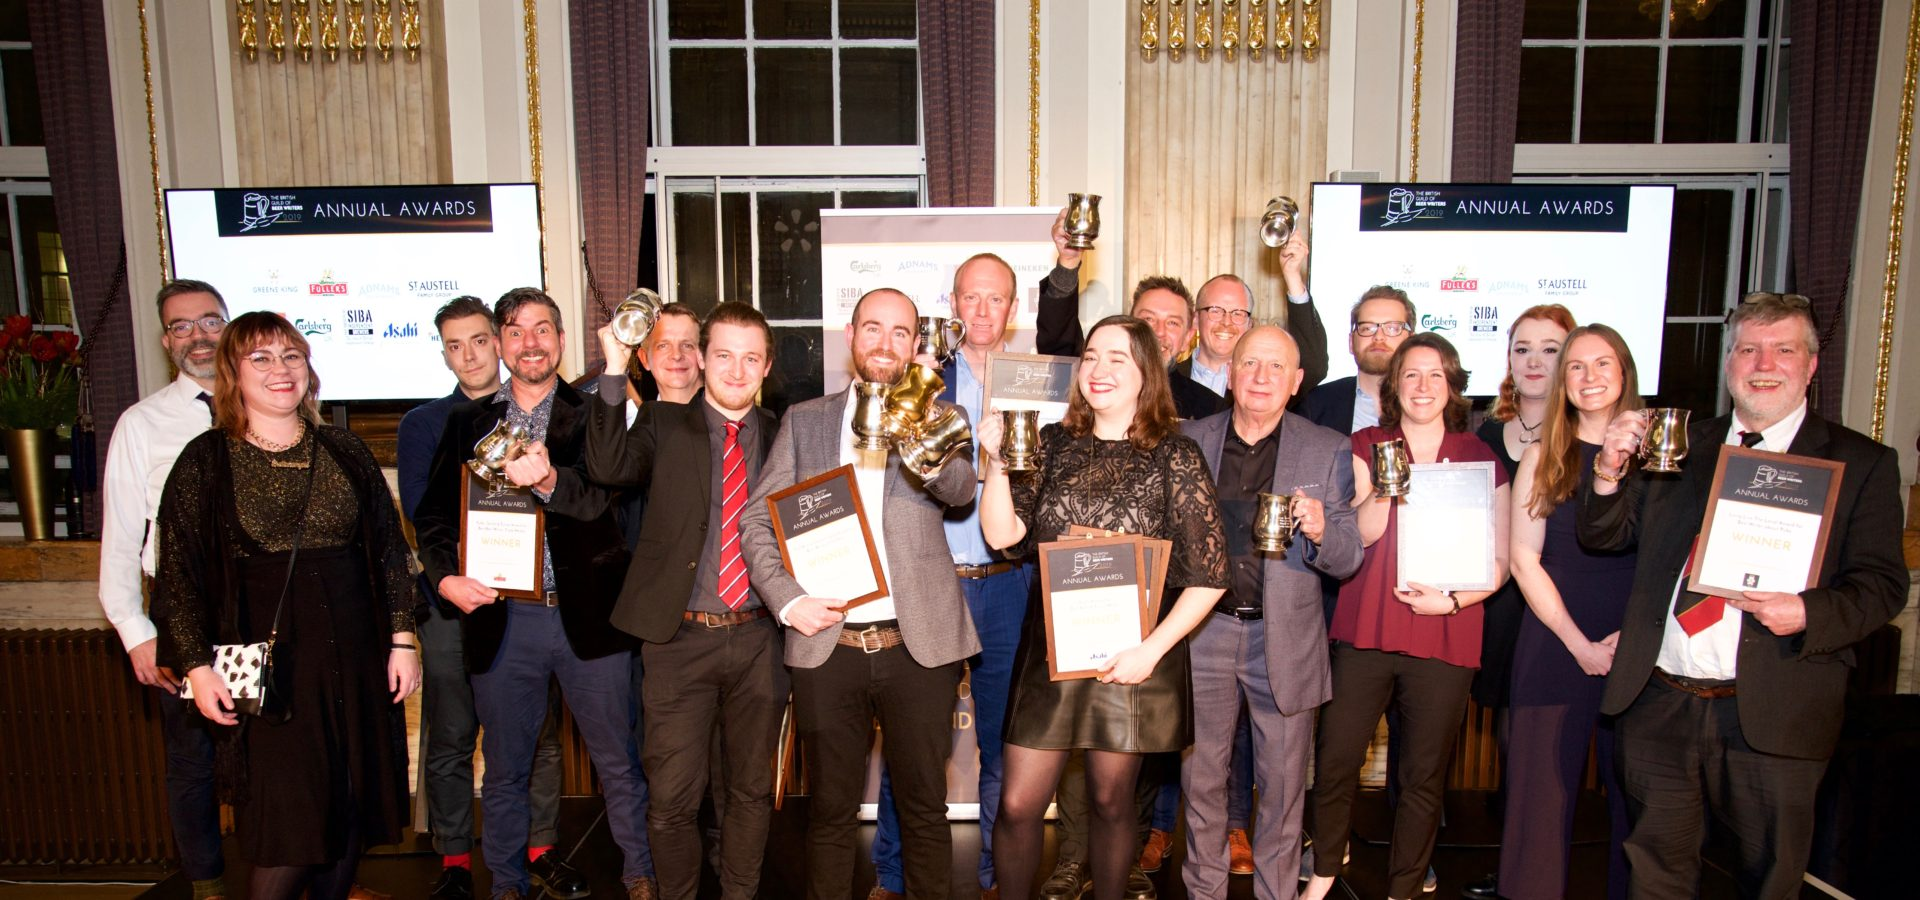 The 2019 Awards winners at One Great George Street